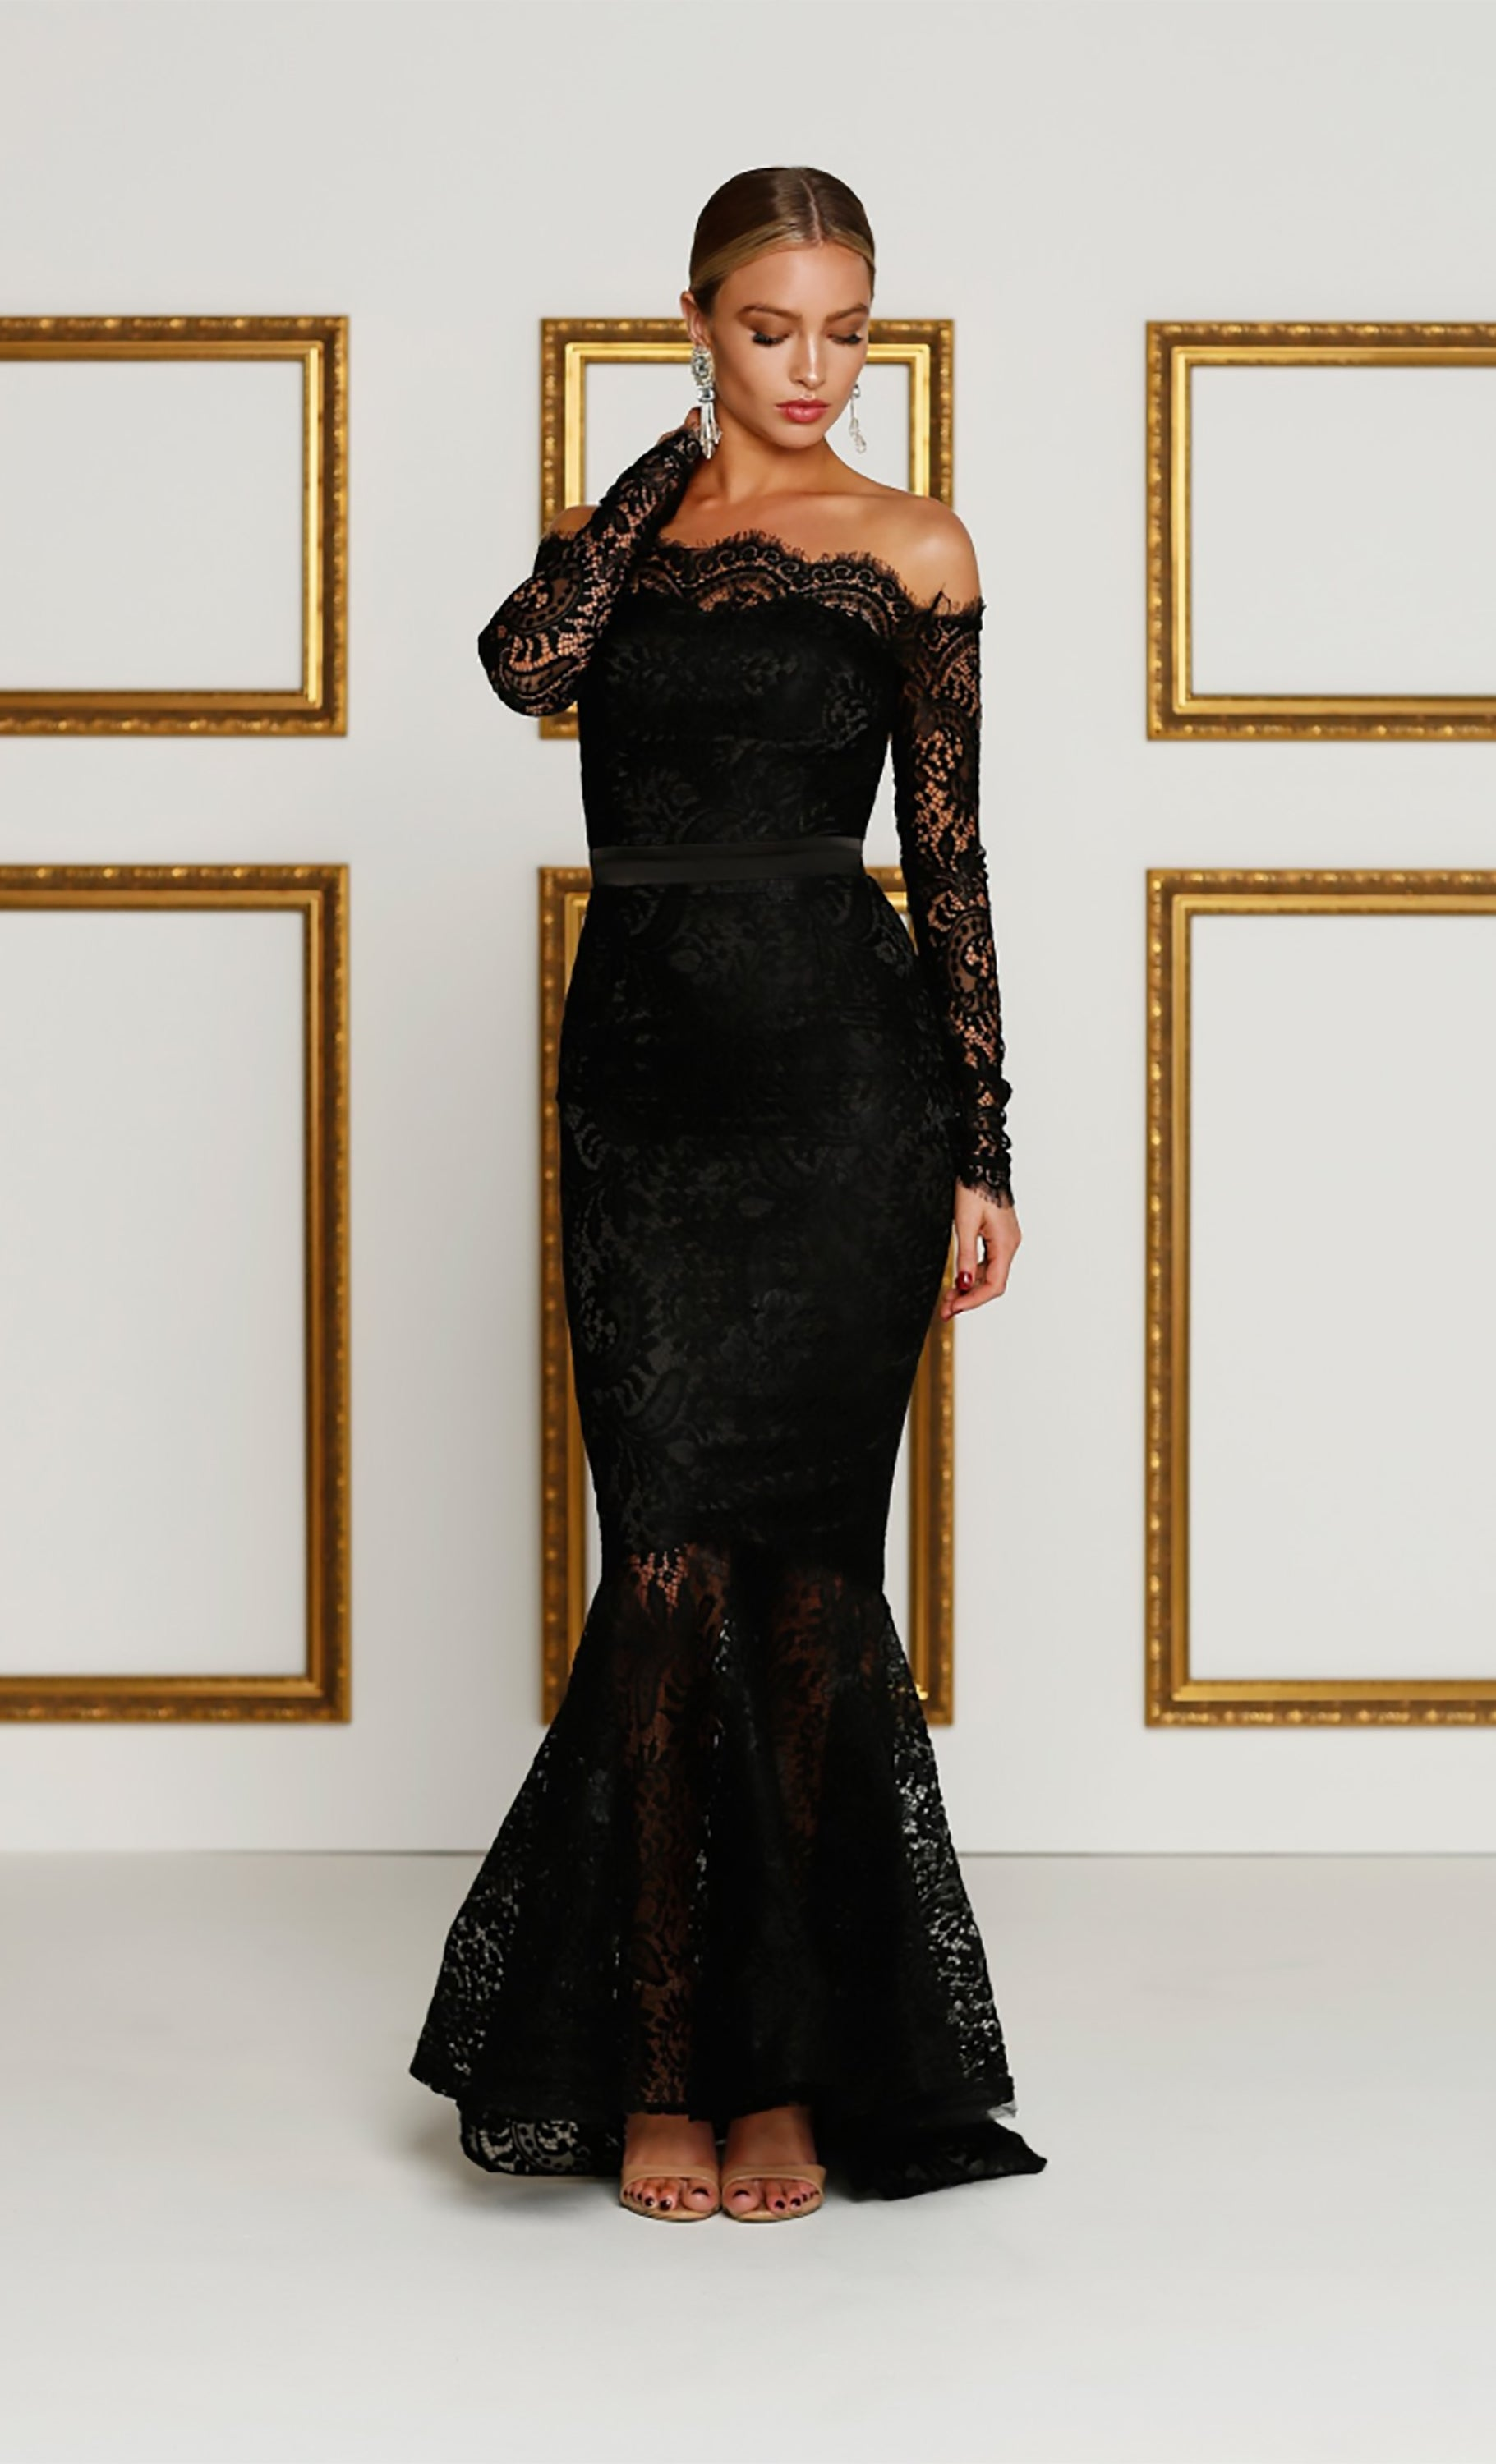 e2a812e5f641 Last Dance Black Lace Boatneck Scalloped Off The Shoulder Long Sleeve  Mermaid Maxi Dress